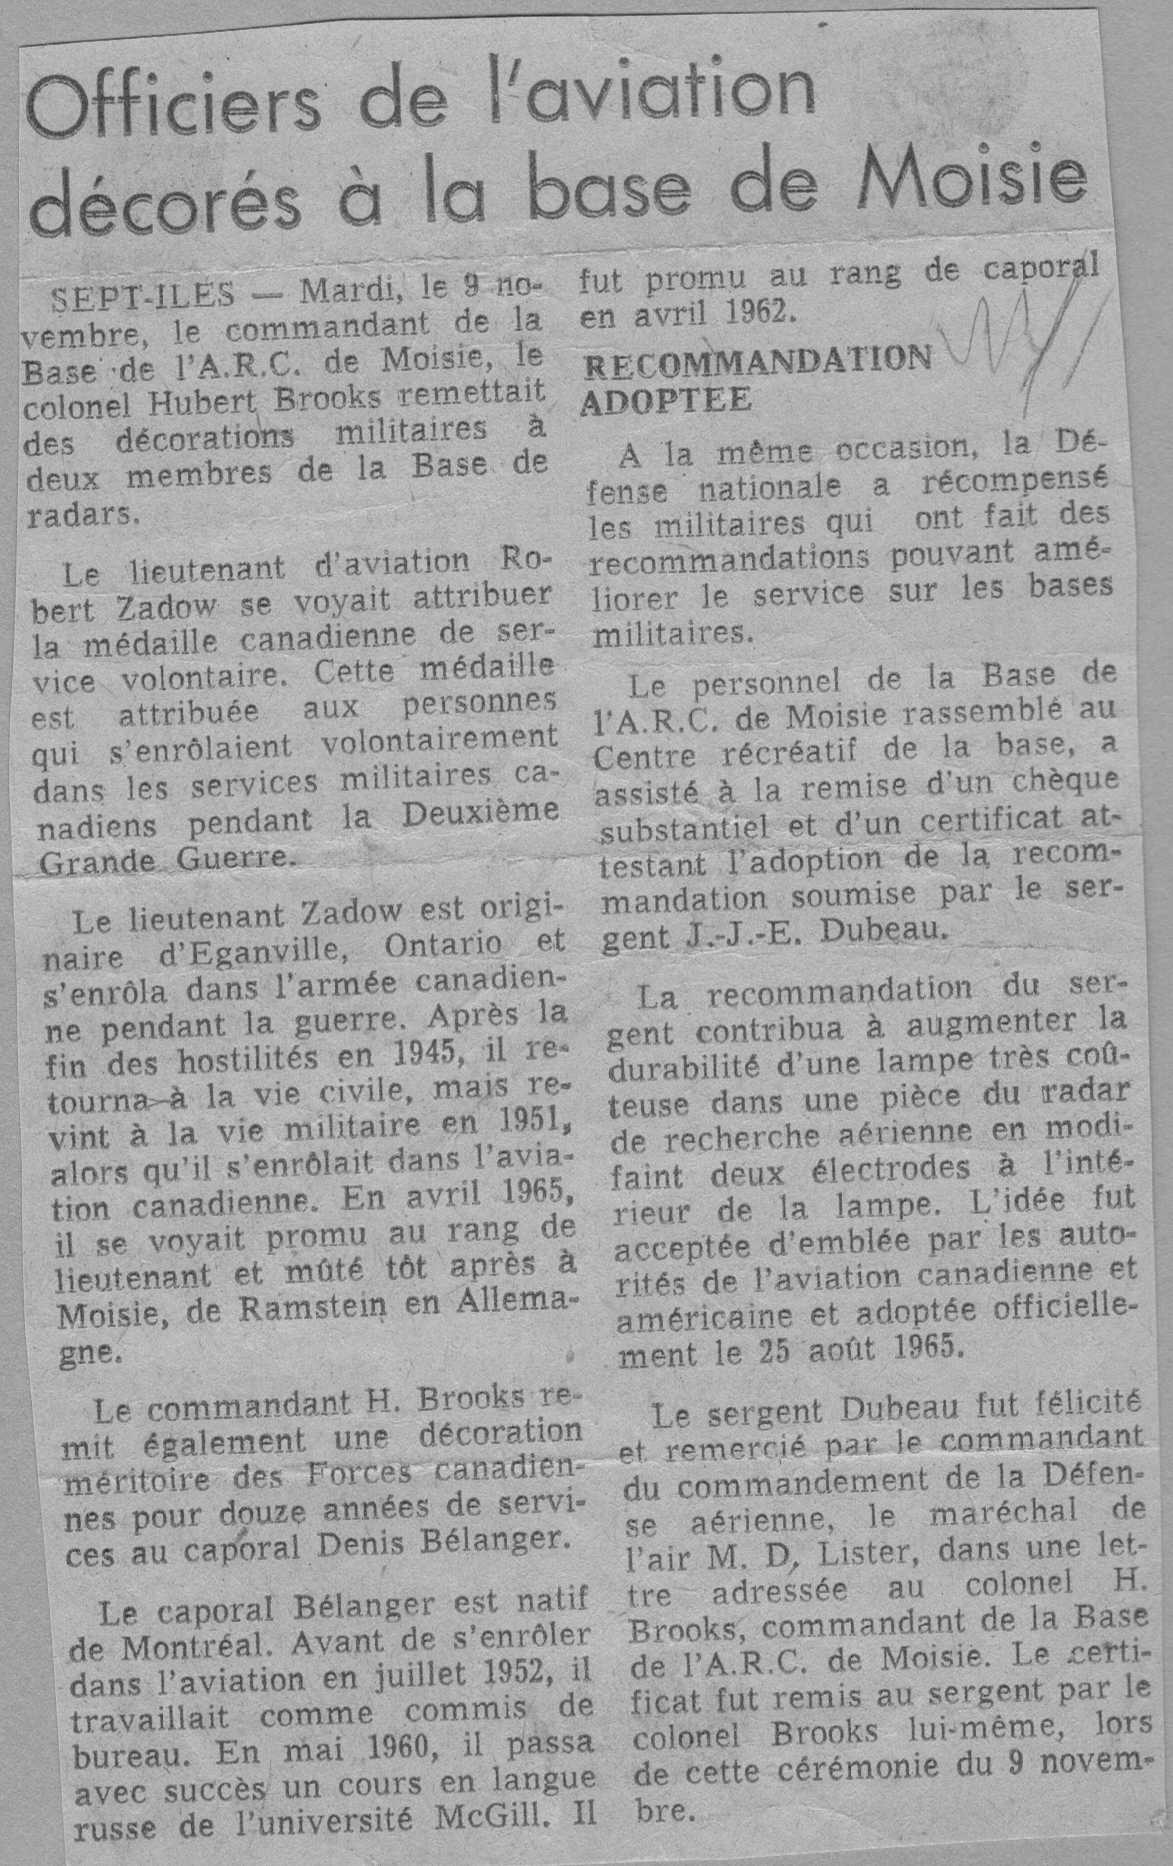 Photo: L'Avenir News Article on Officer Decorations at RCAF Moisie